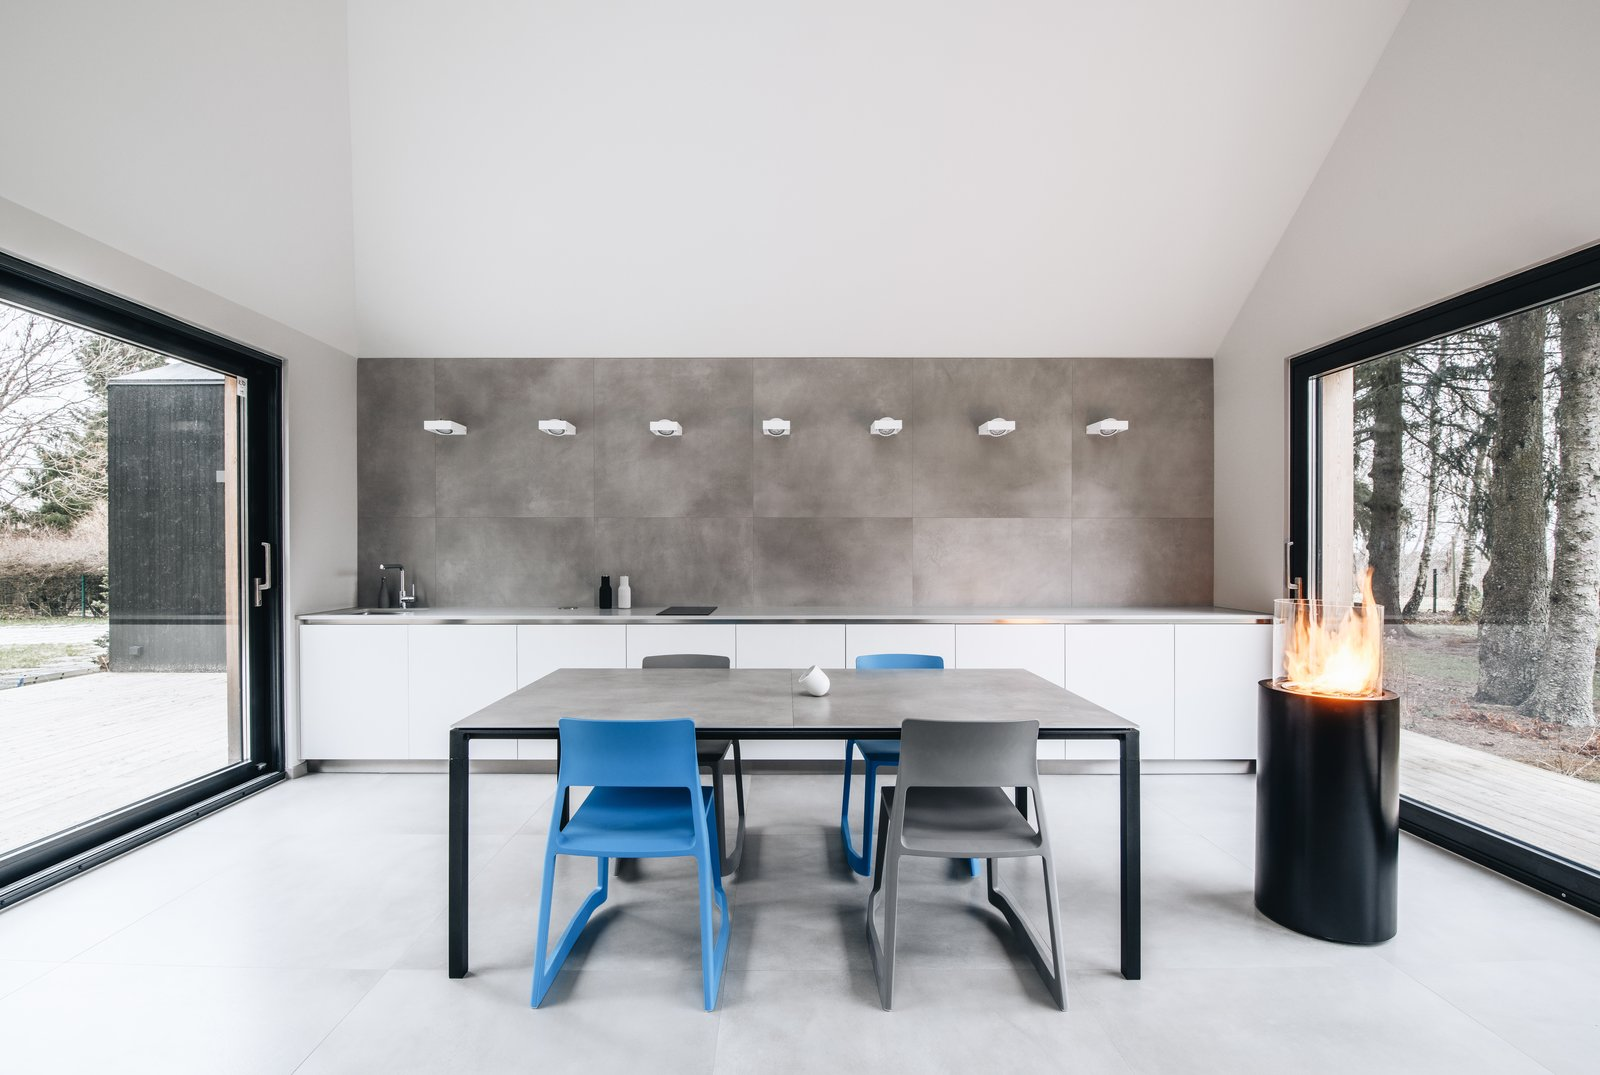 Dining Room, Table, Chair, and Wall Lighting The simple, fuss-free kitchen and dining area flows into the living lounge.  Photo 7 of 13 in This Forest Retreat Is a Modern Take on the Traditional Estonian Hut